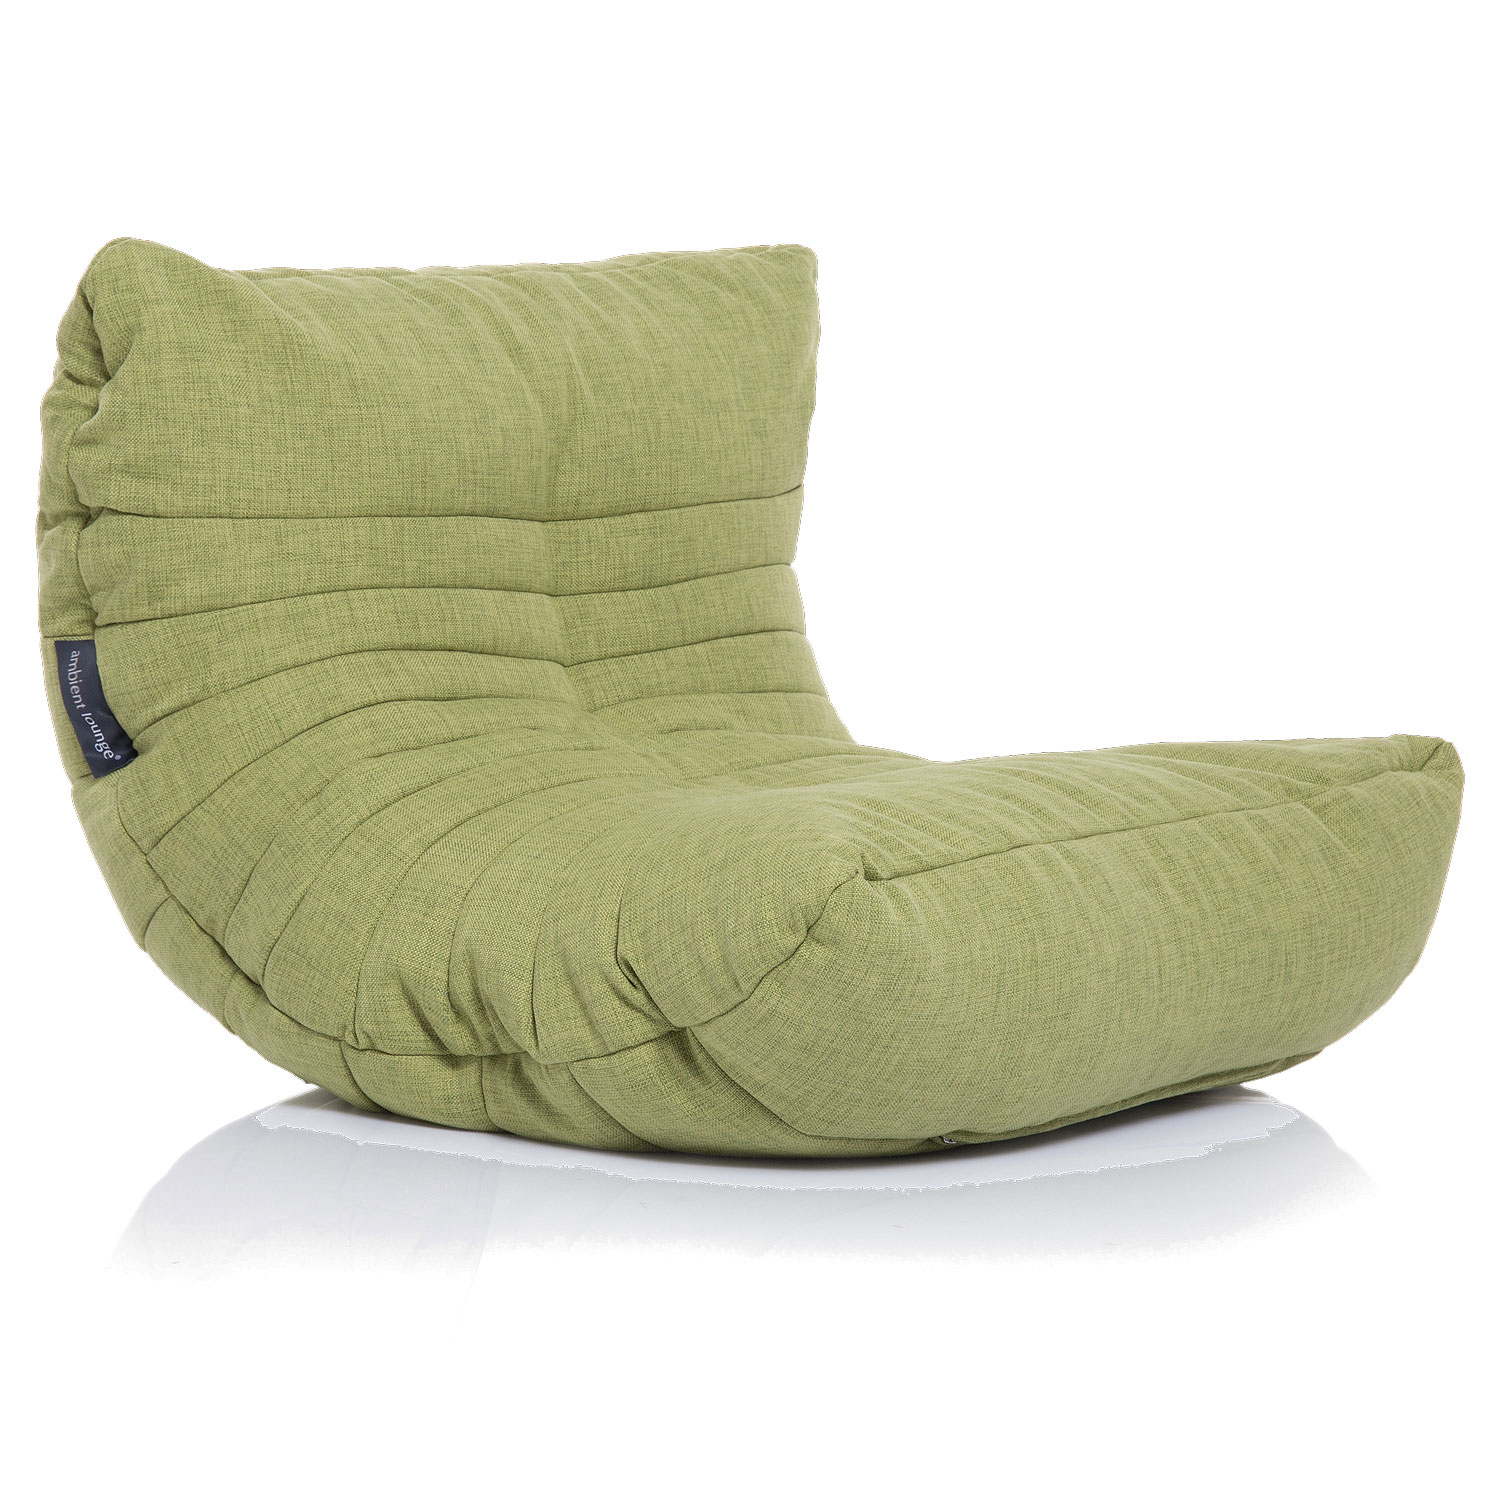 Interior Bean Bags Acoustic Sofa Lime Citrus Bean